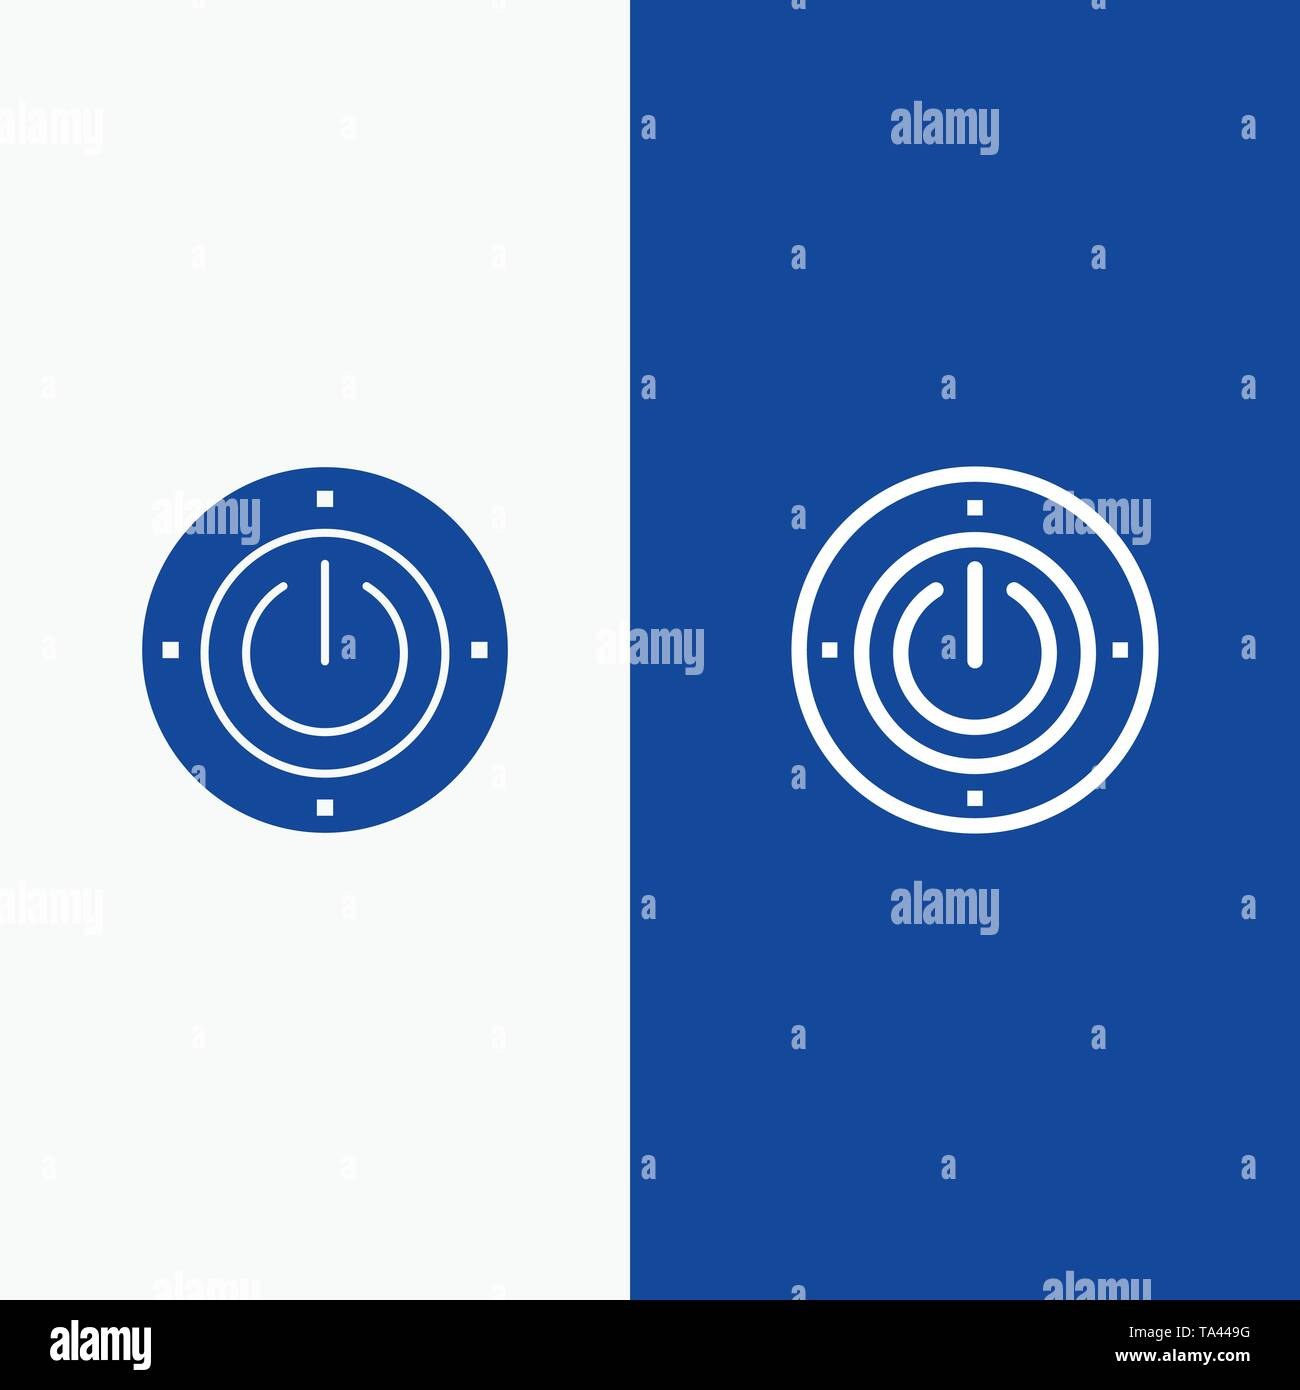 Electricity, Energy, Power, Computing Line and Glyph Solid icon Blue banner - Stock Image